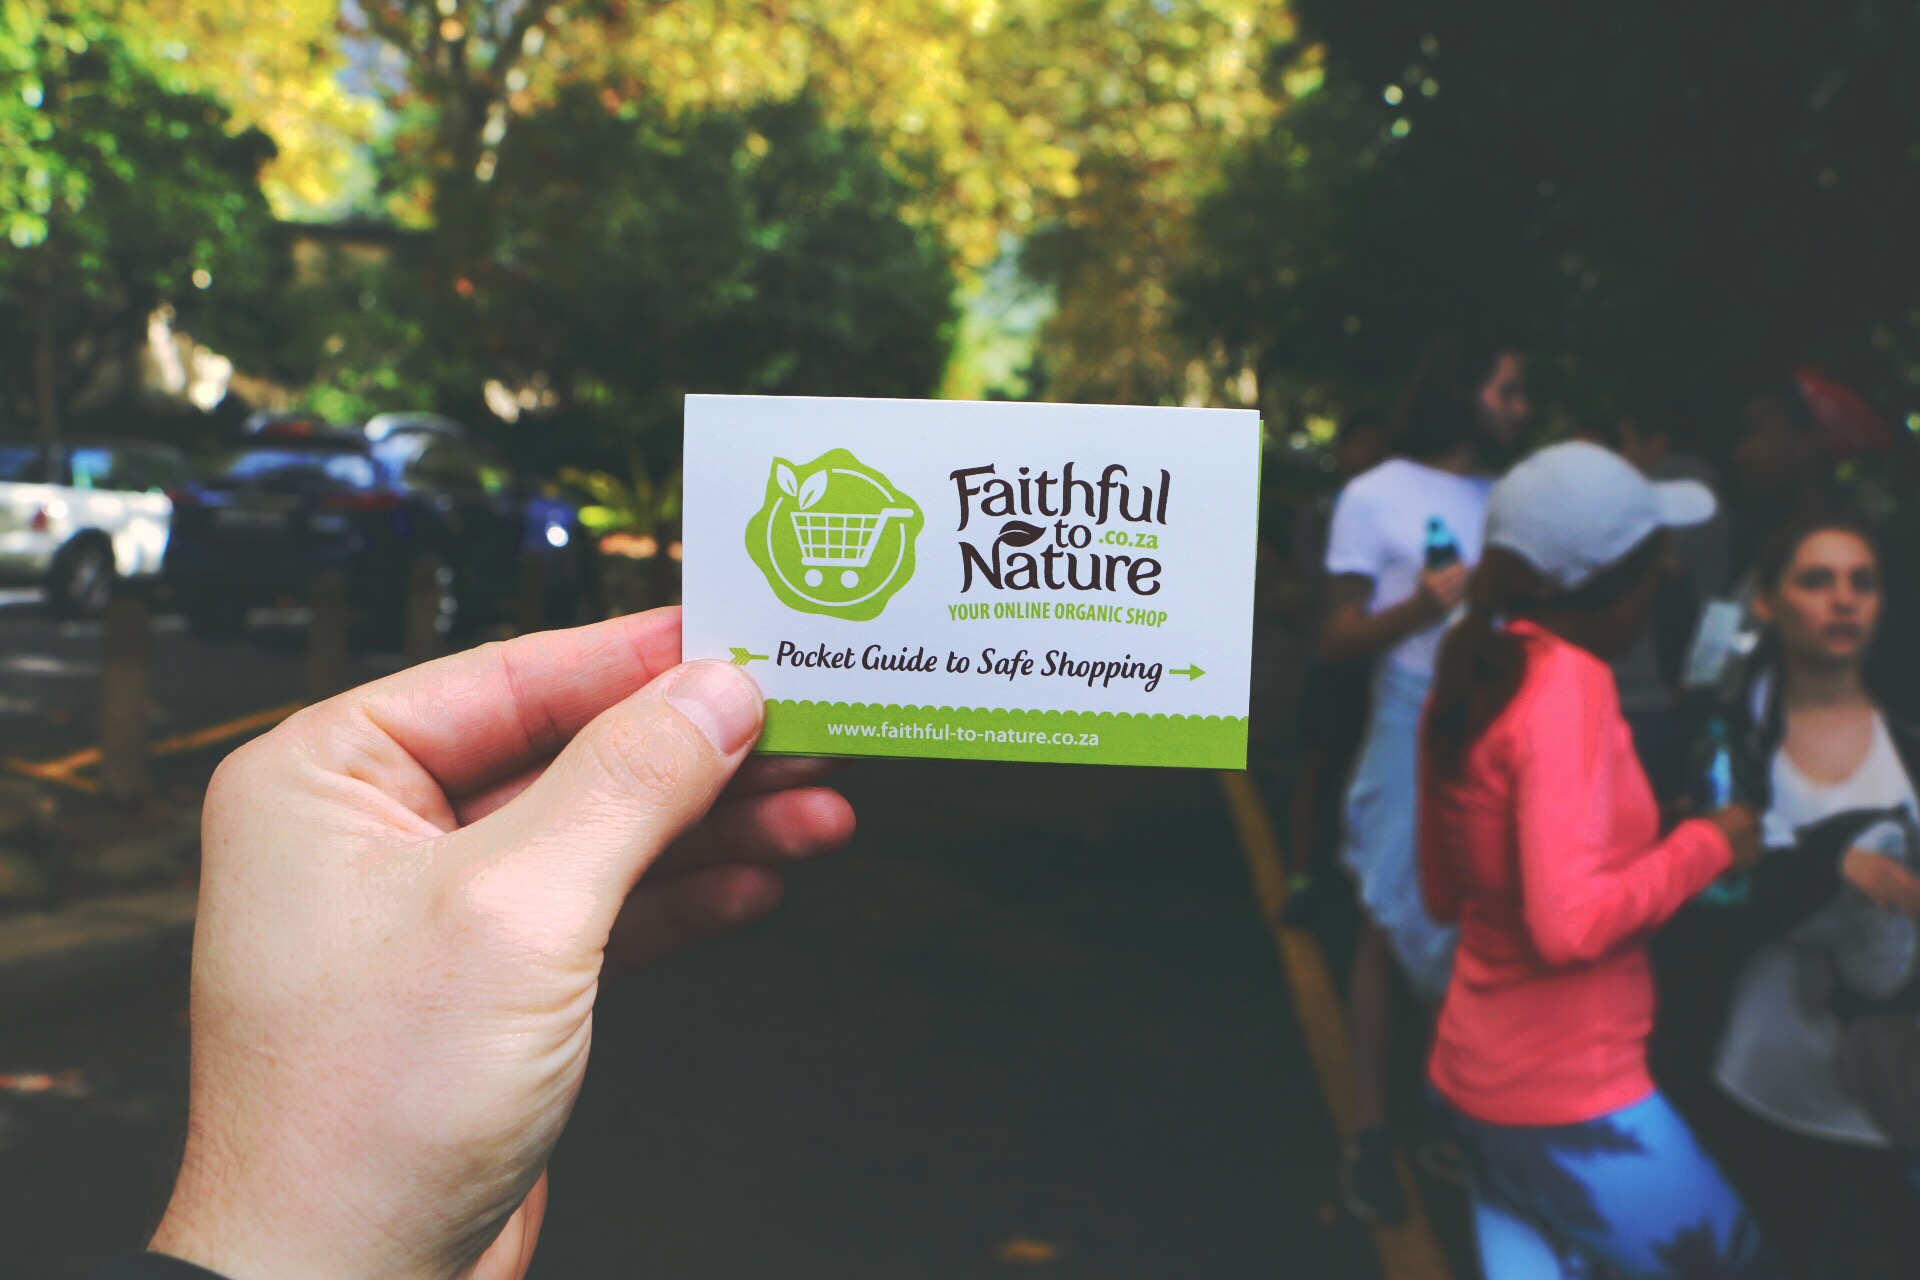 APPLES, WATER, AND A FAITHFUL TO NATURE POCKET GUIDE TO GREEN SHOPPING - THE MAKINGS OF A SIMPLE GOODIE BAG